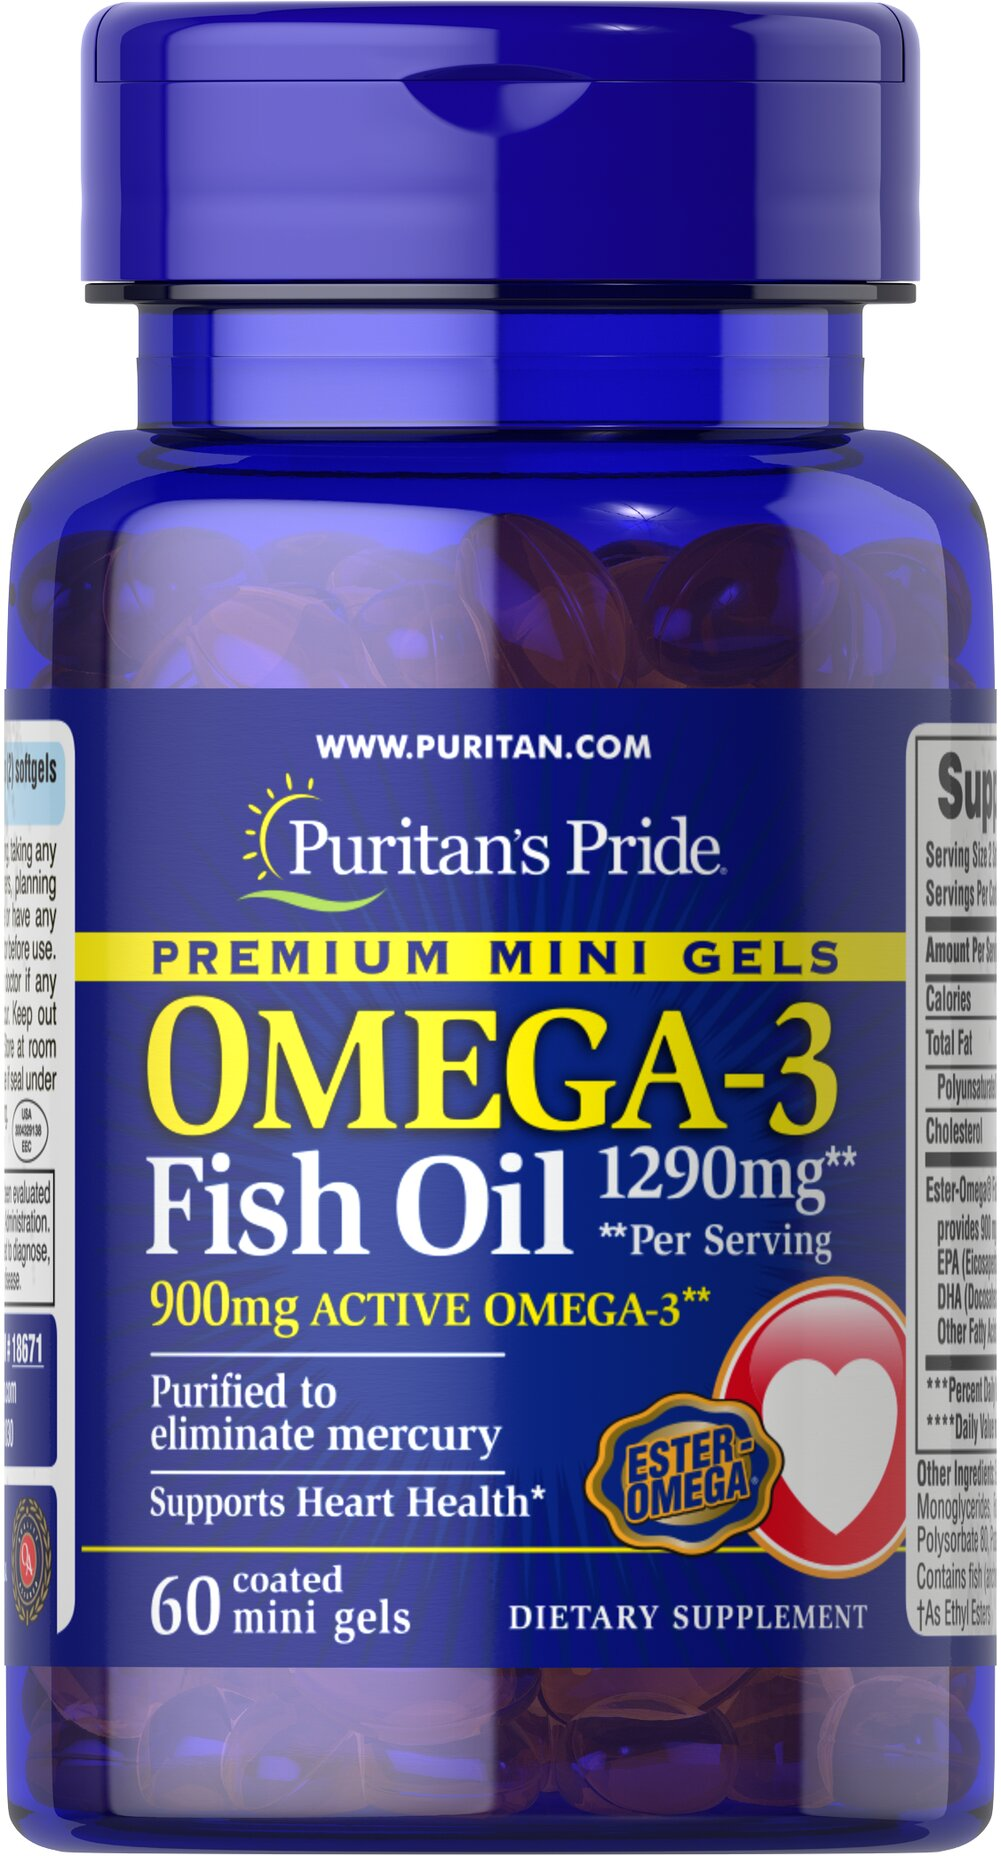 Omega-3 Fish Oil 645 mg Mini Gels (450 mg Active Omega-3) <p><strong>Purified to Eliminate Mercury</strong></p><p>Enhanced with 900 mg of active Omega-3 per serving</p><p>Mercury free mini gels are coated to prevent fishy aftertaste</p> 60 Coated Softgels 645 mg $19.19